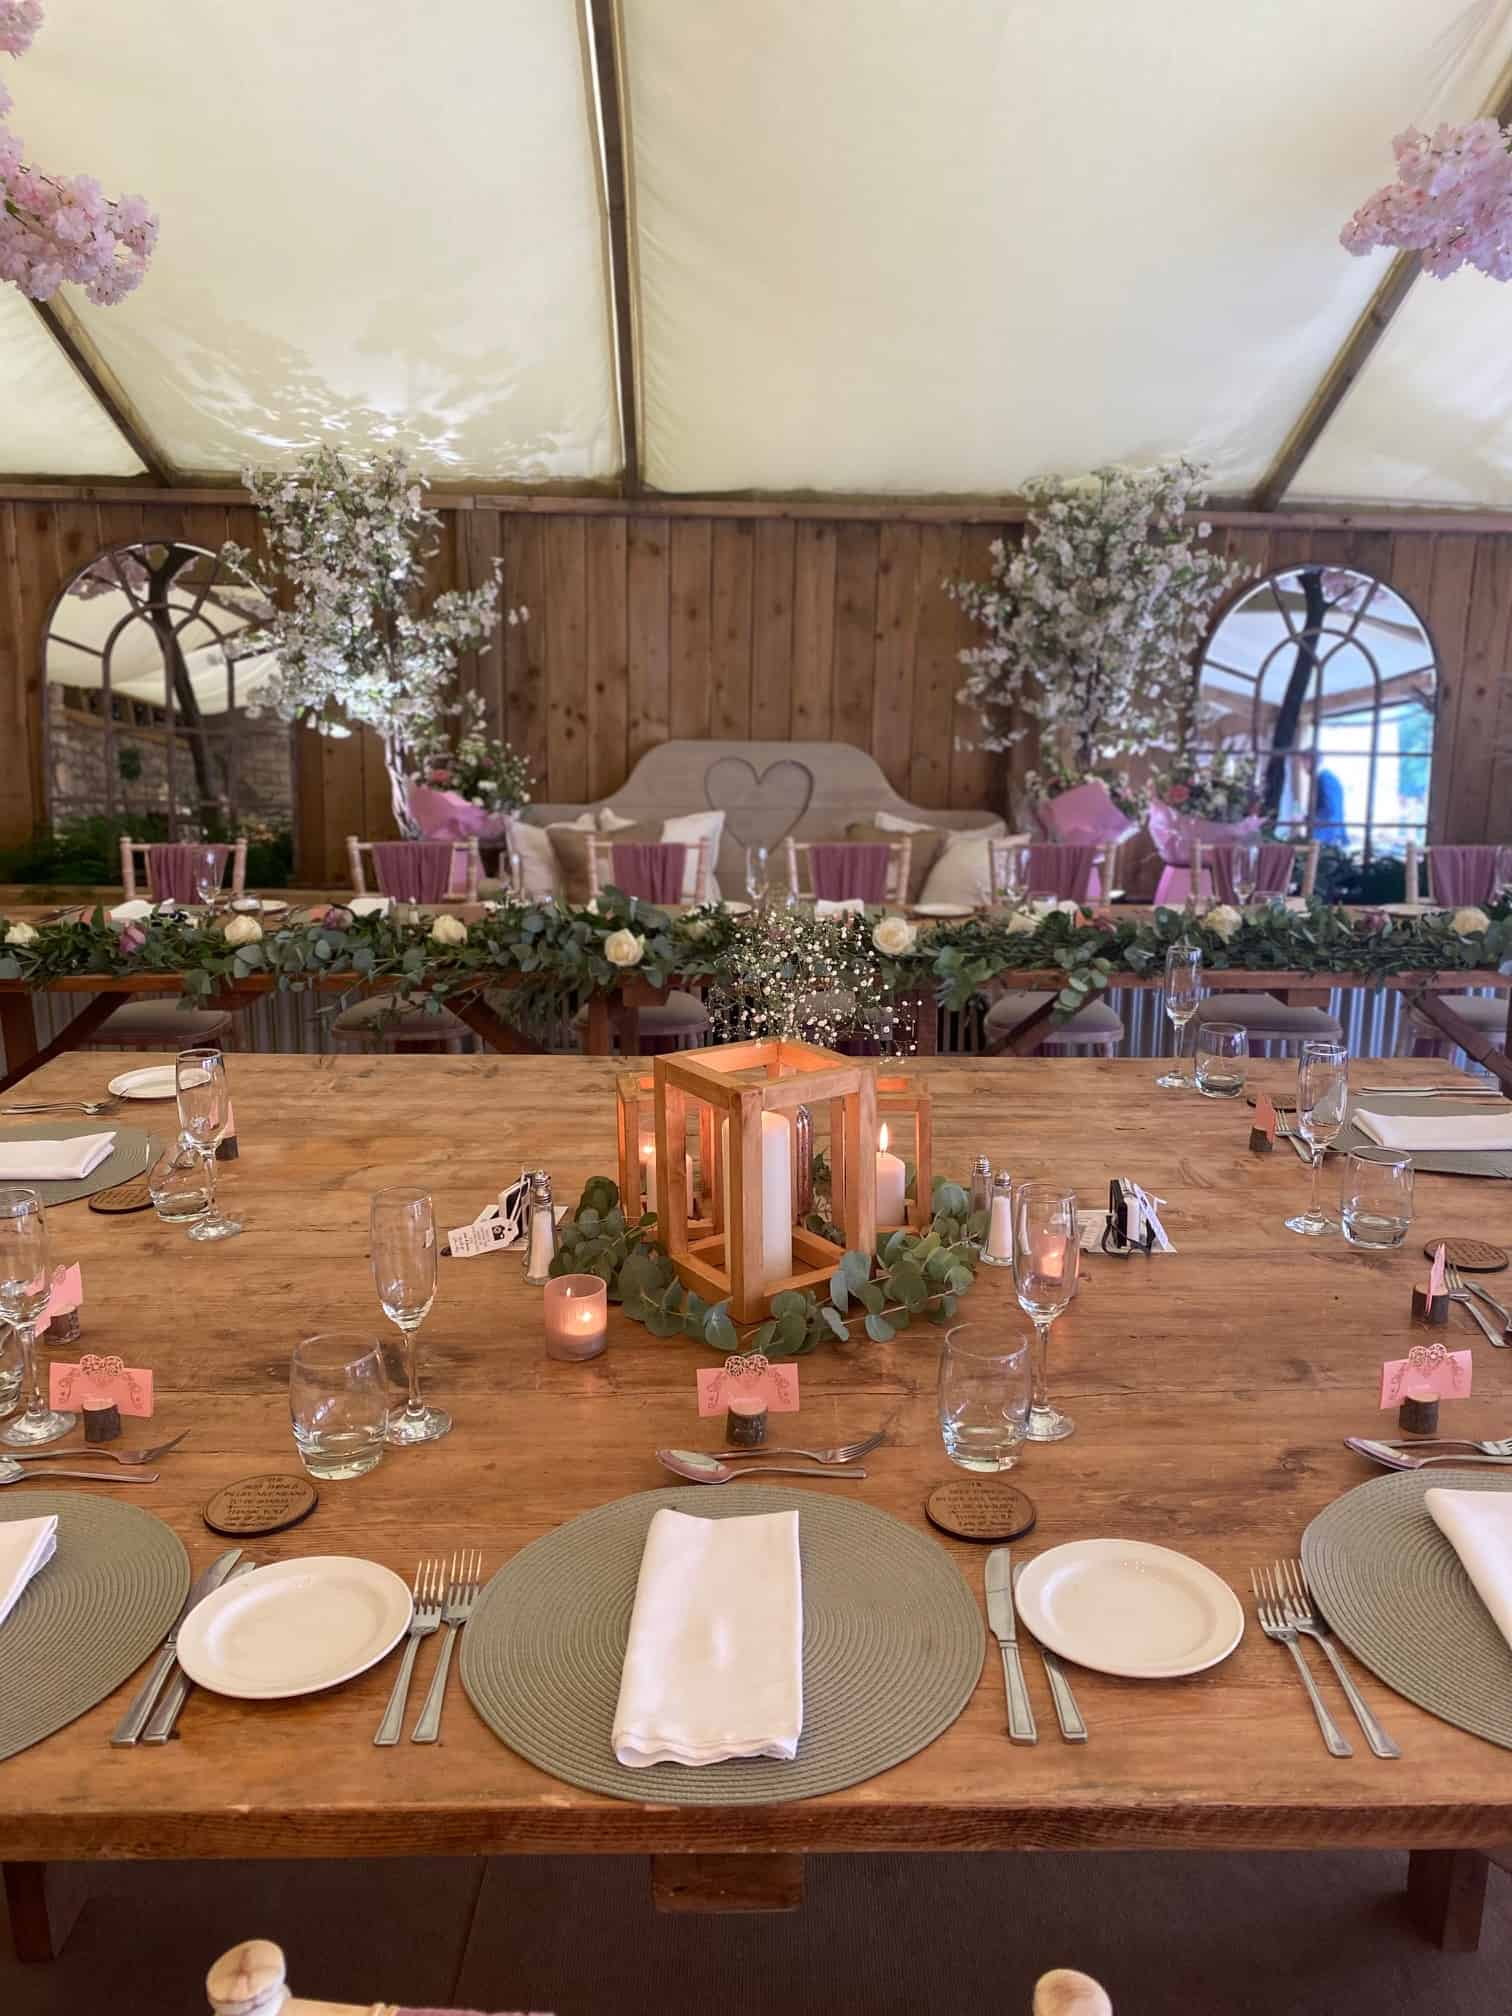 The Courtyard Marquee